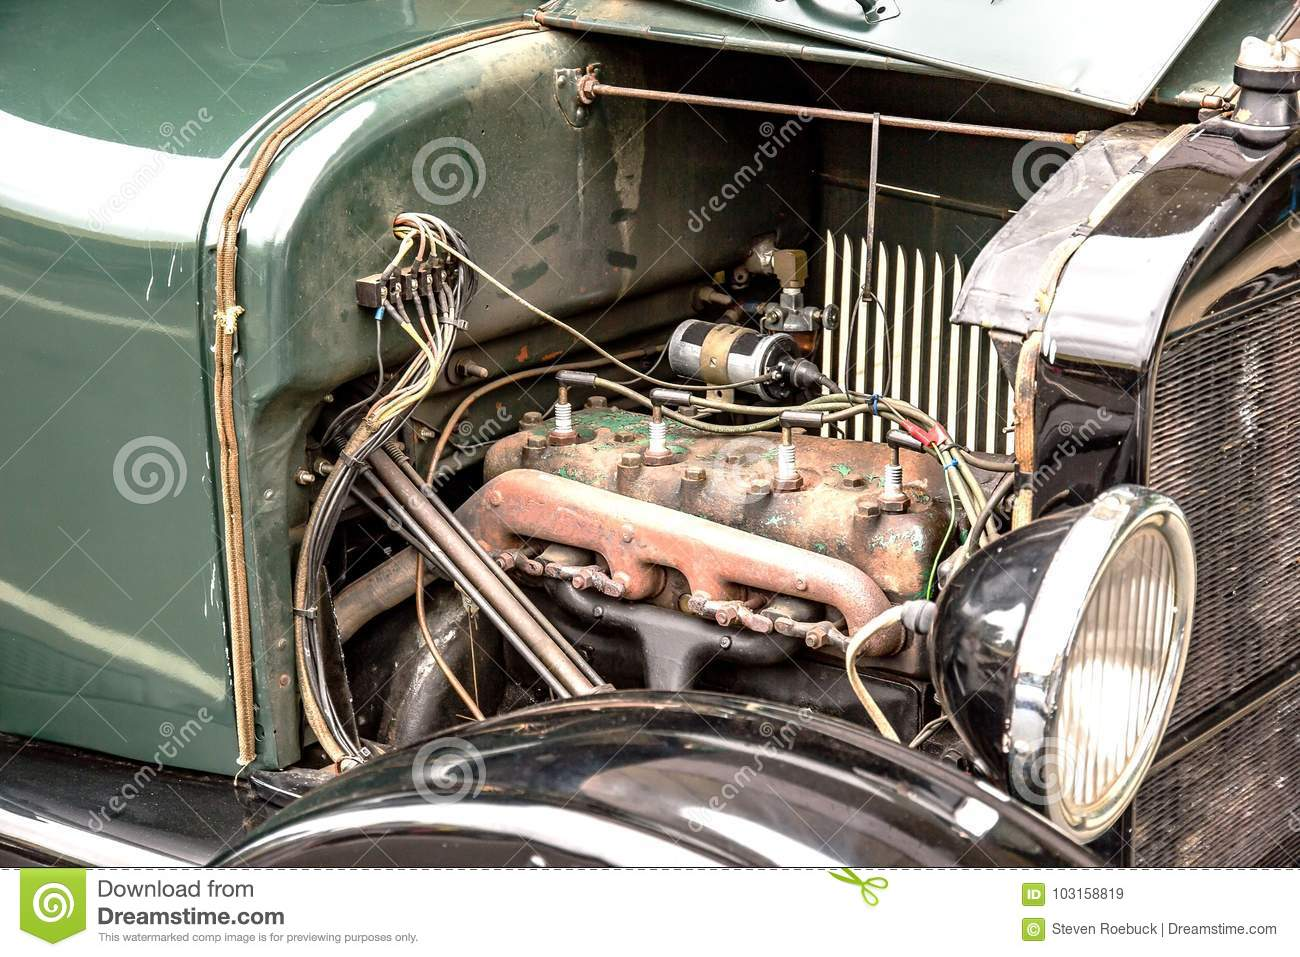 Old Car engine stock image. Image of glass, green, retro - 103158819